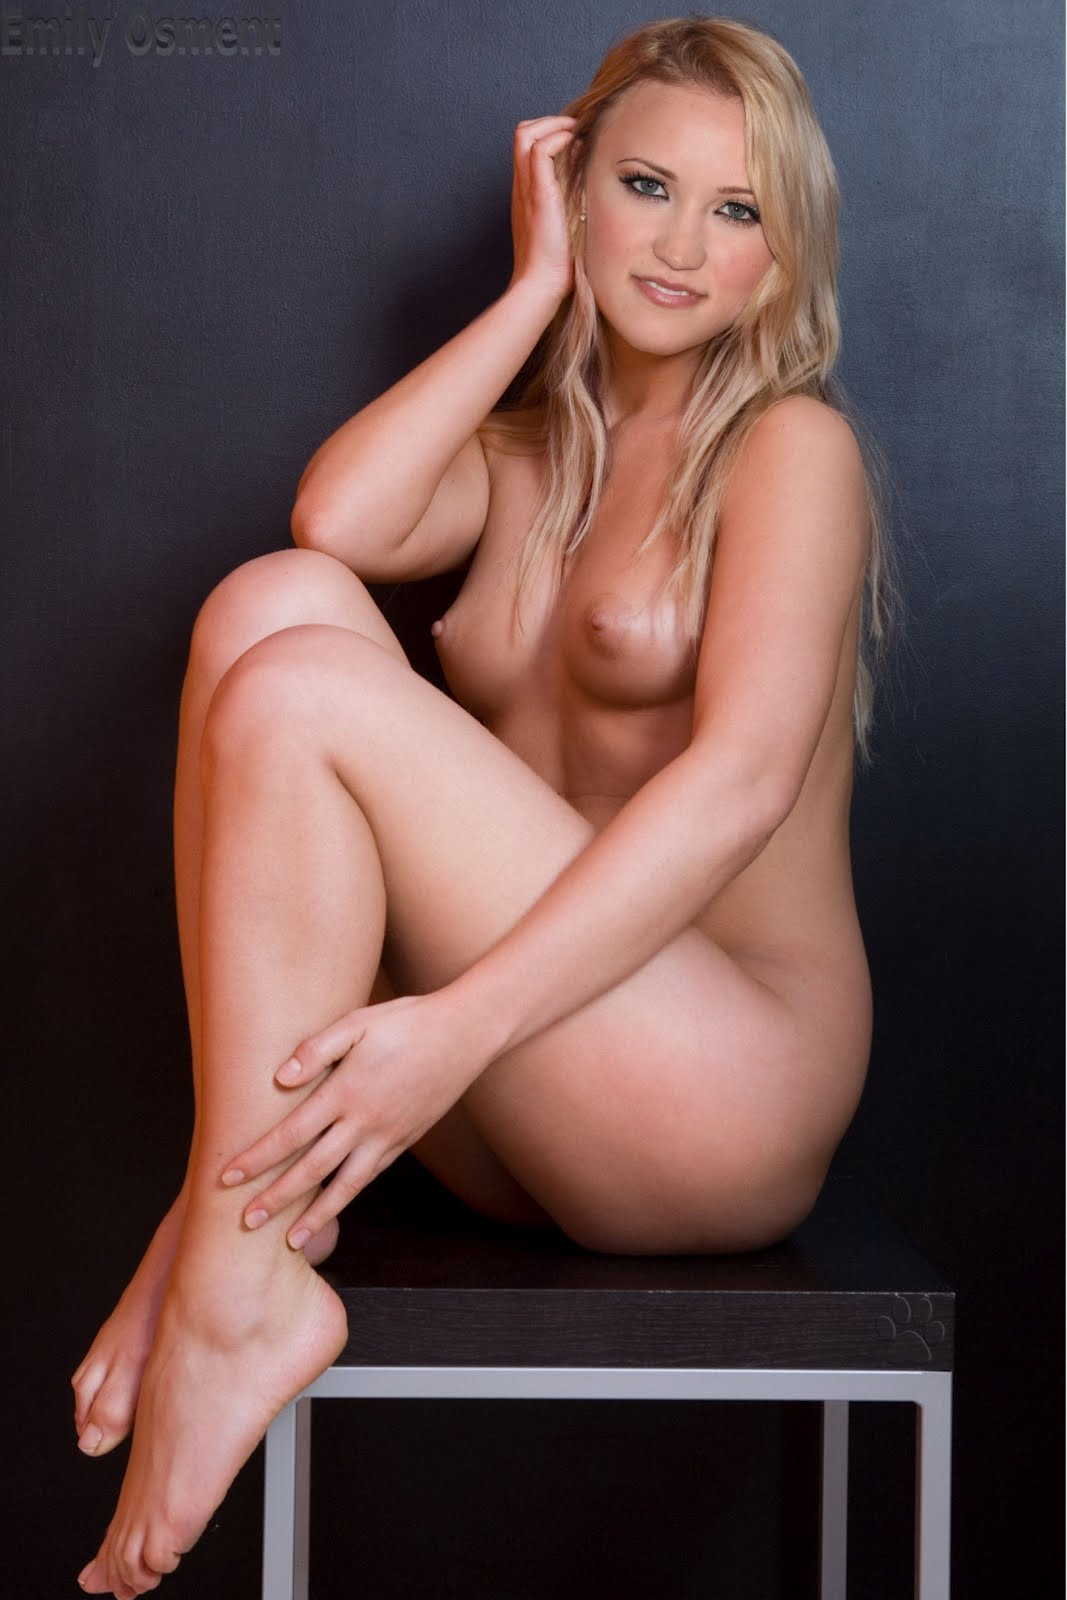 emily osment photos nude